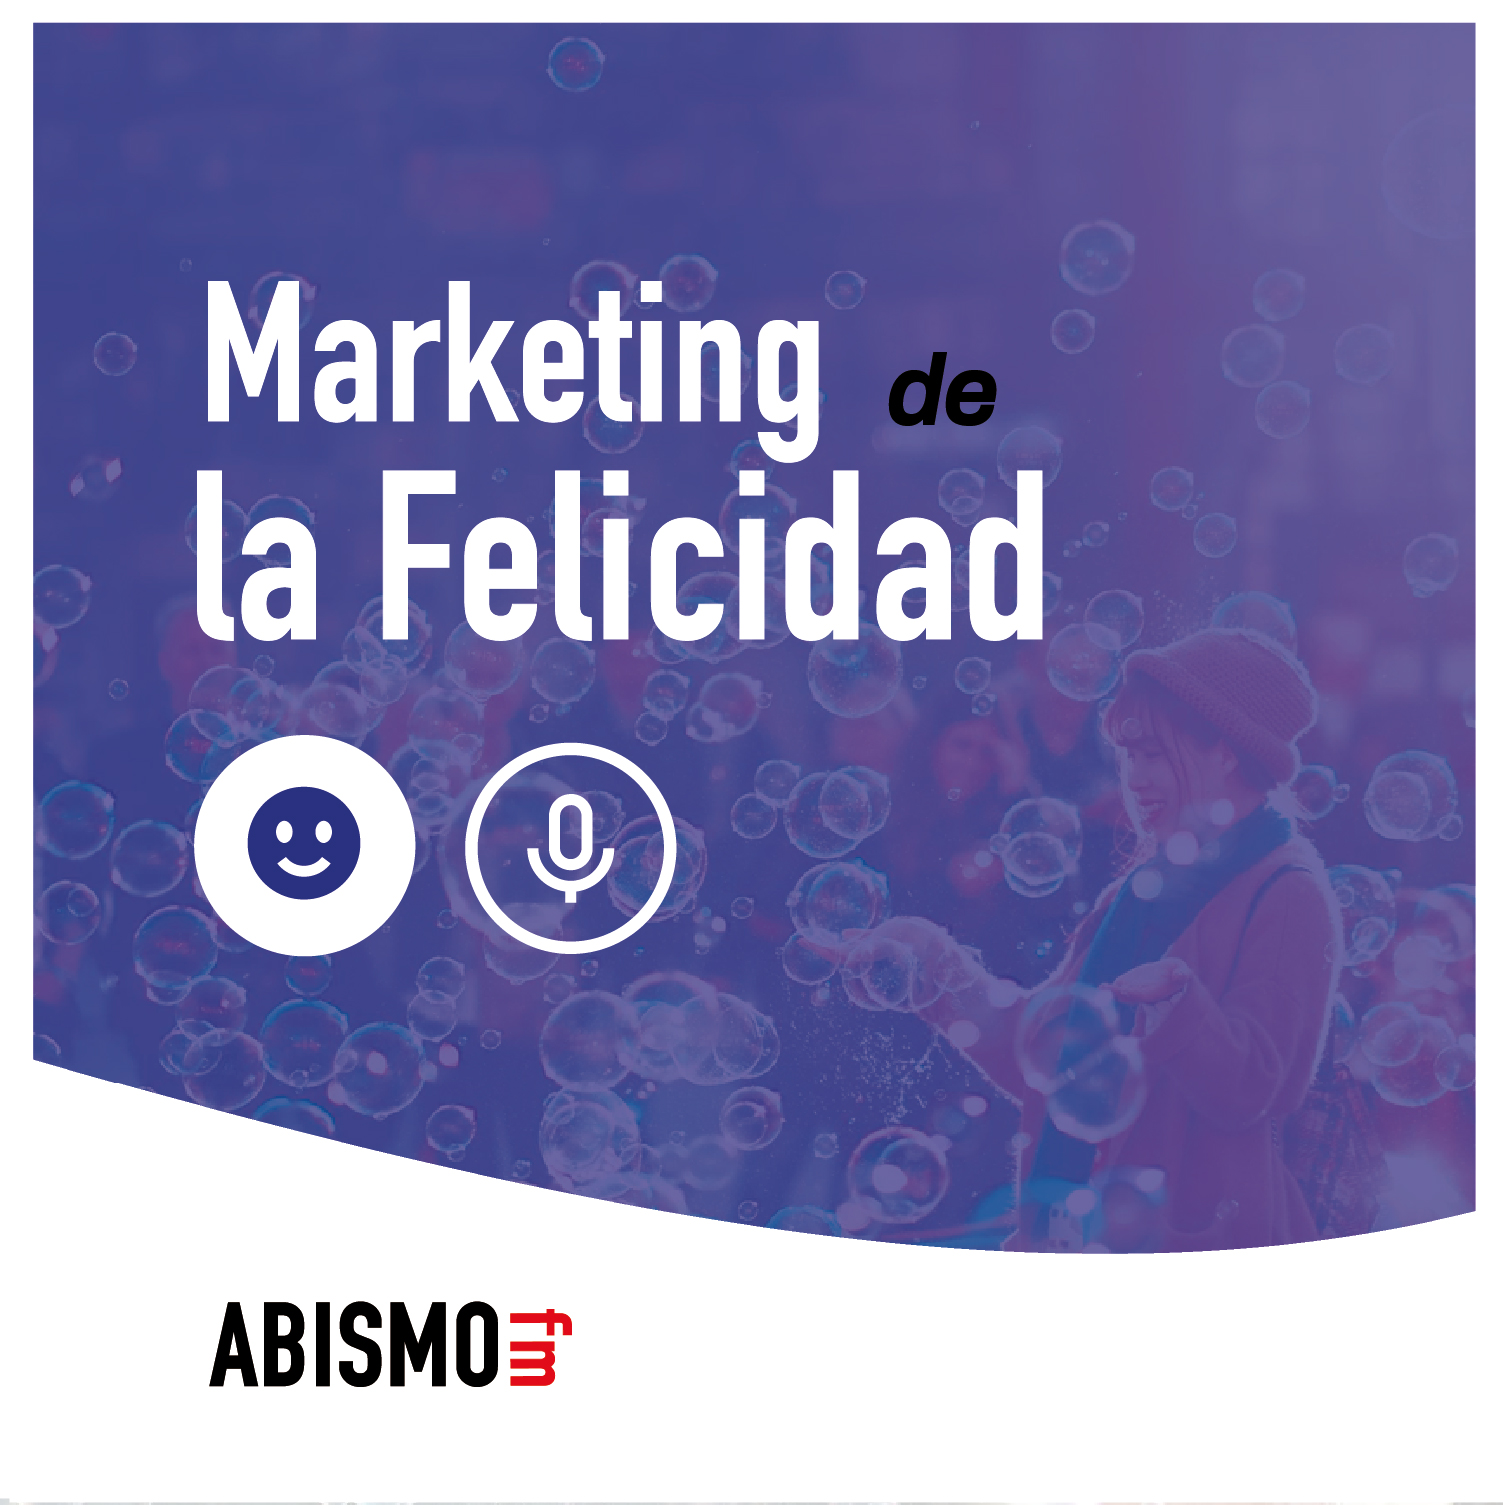 MDLF – Estrategias de marketing digital para el 2020